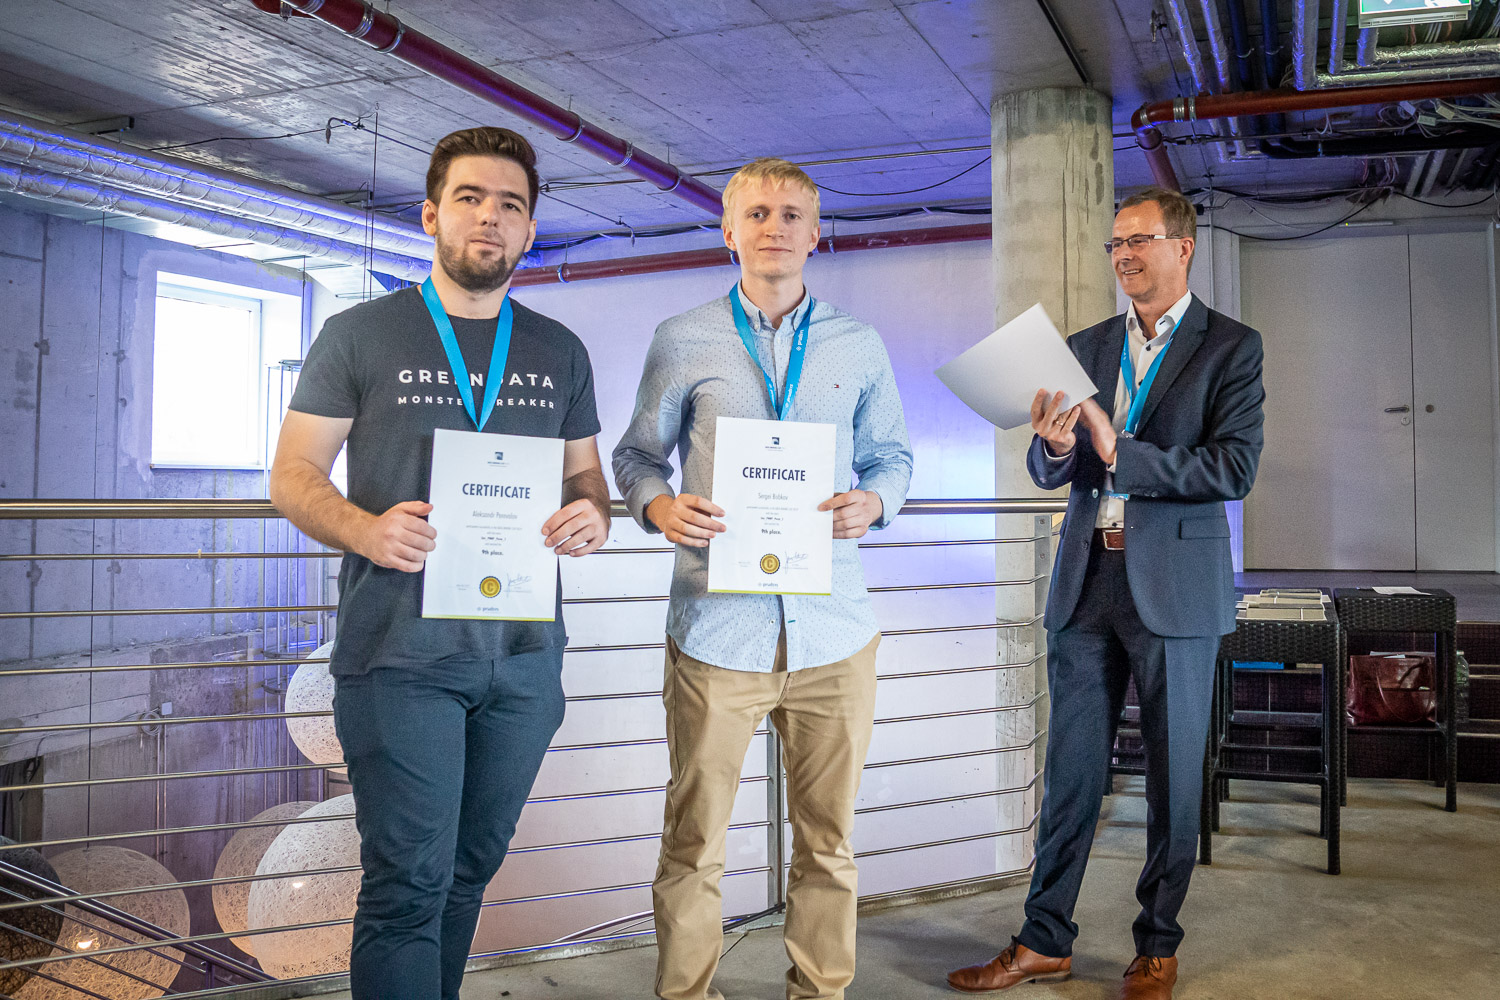 prudsys retail intelligence summit 2019 | Conference on AI in Retail | Awards and certificates